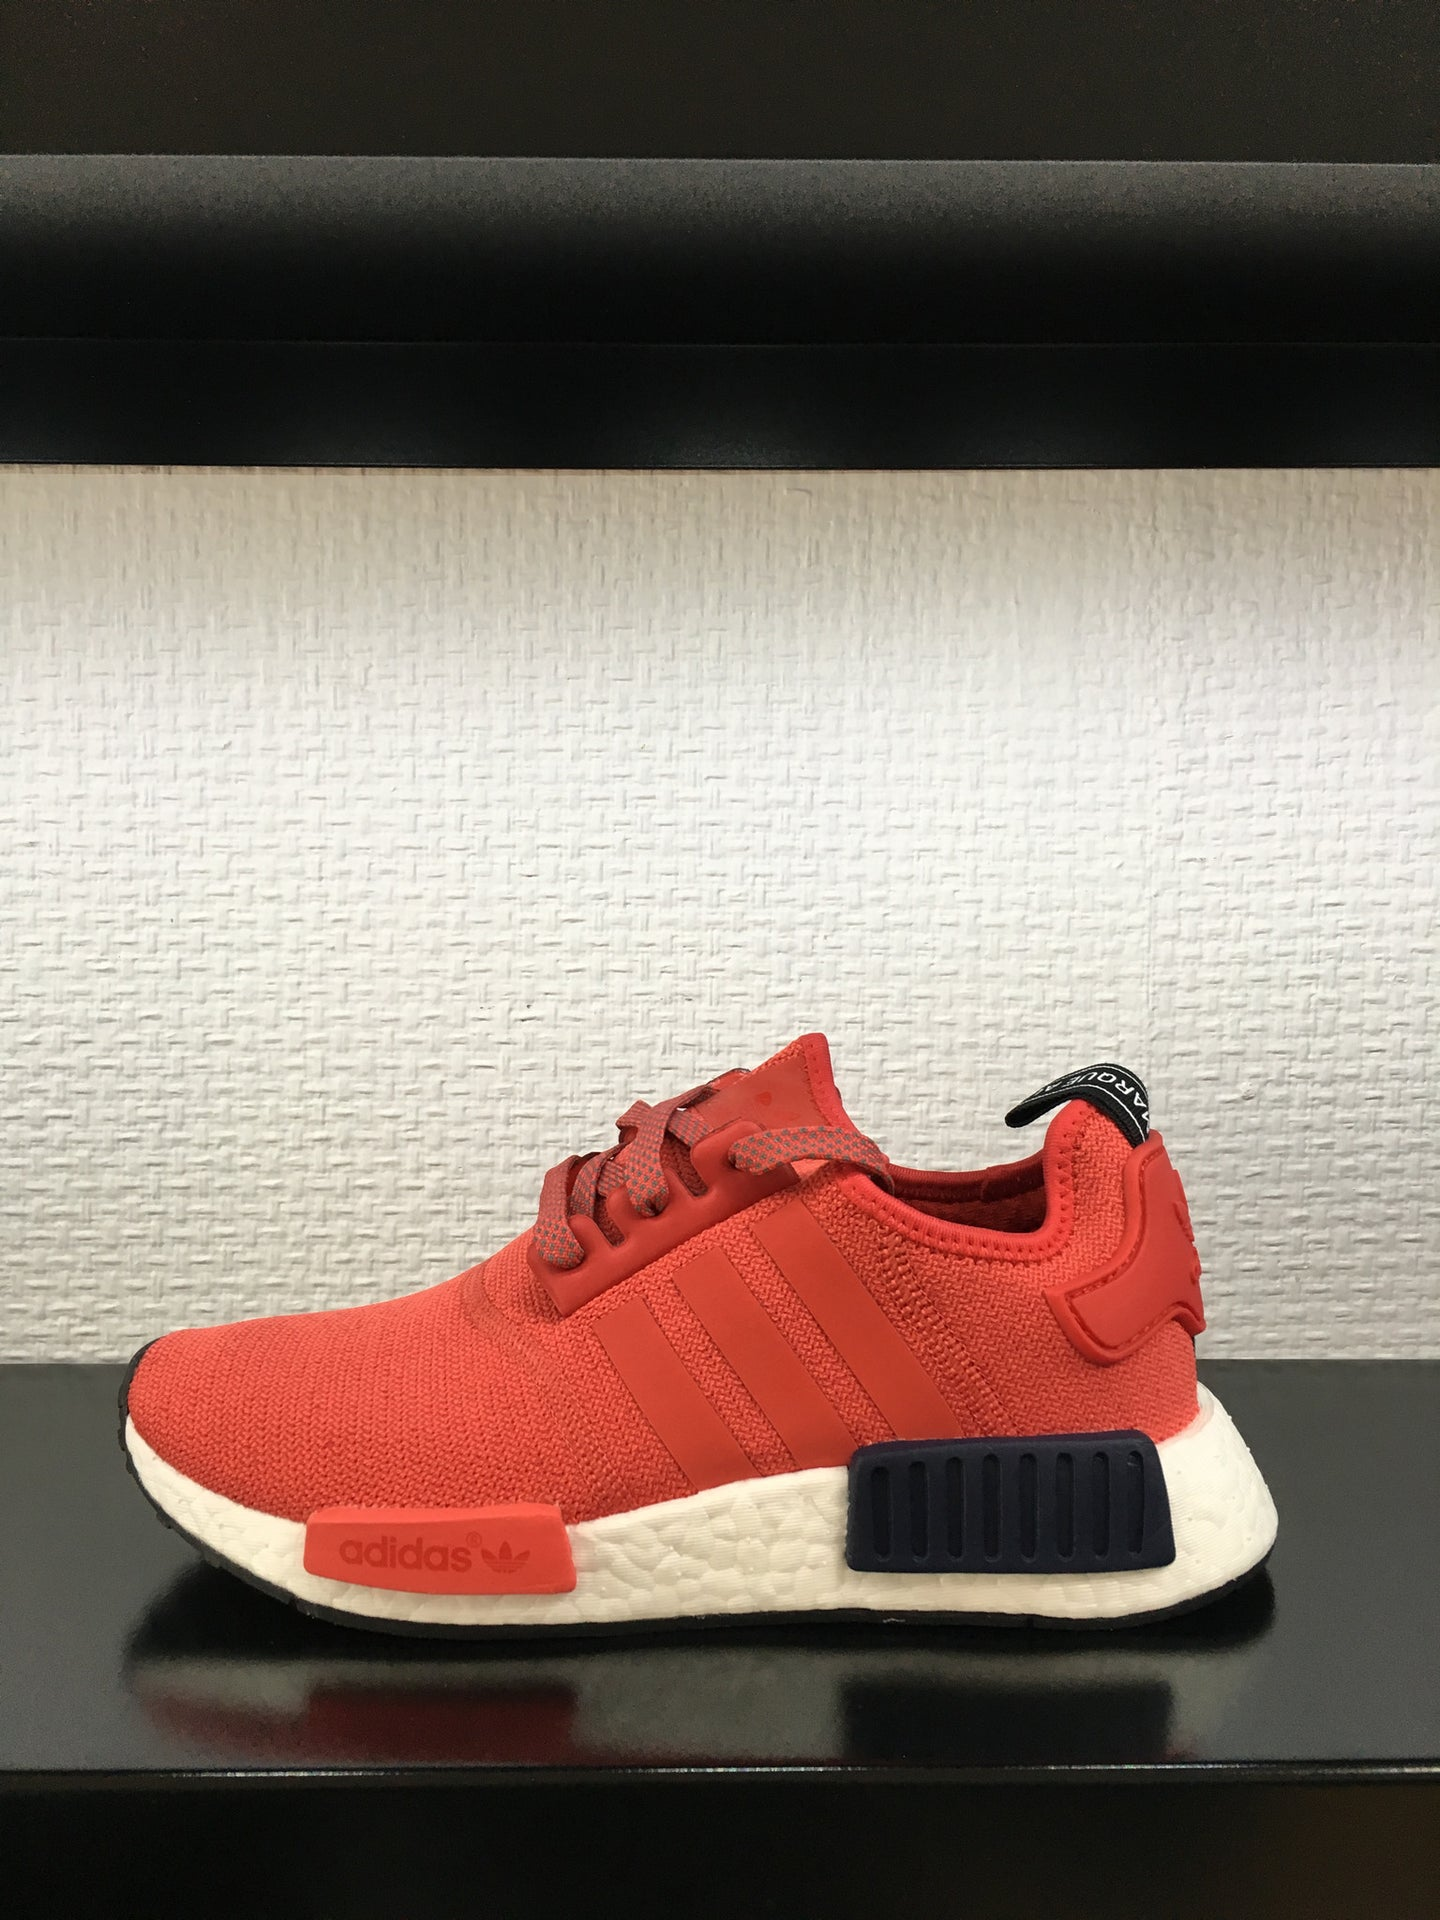 NMD R1 Women's-Red/Black/White